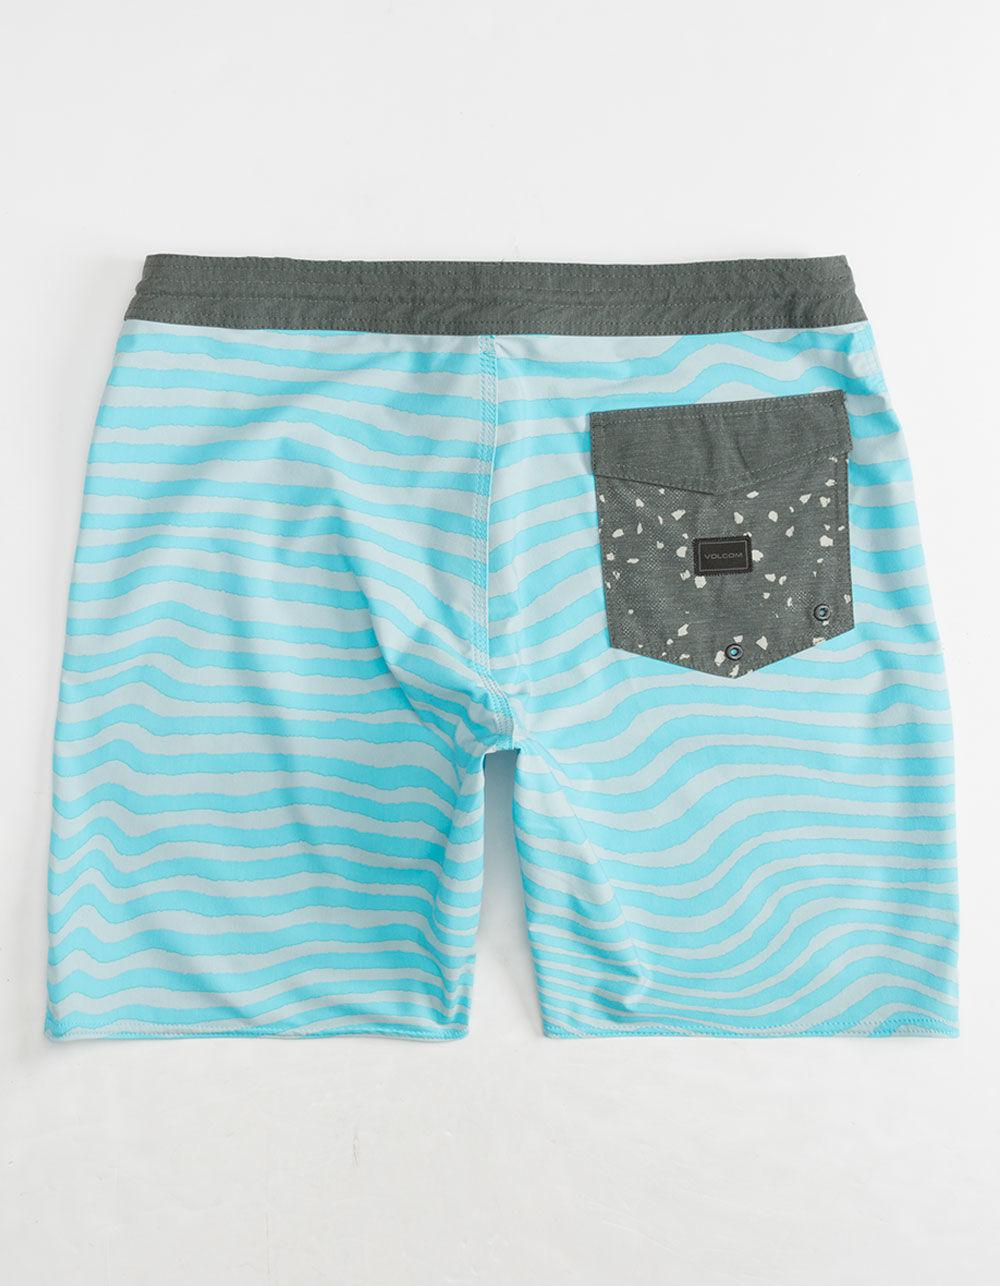 f00d39decb Lyst - Volcom Mag Vibes 19 Mens Boardshorts in Blue for Men